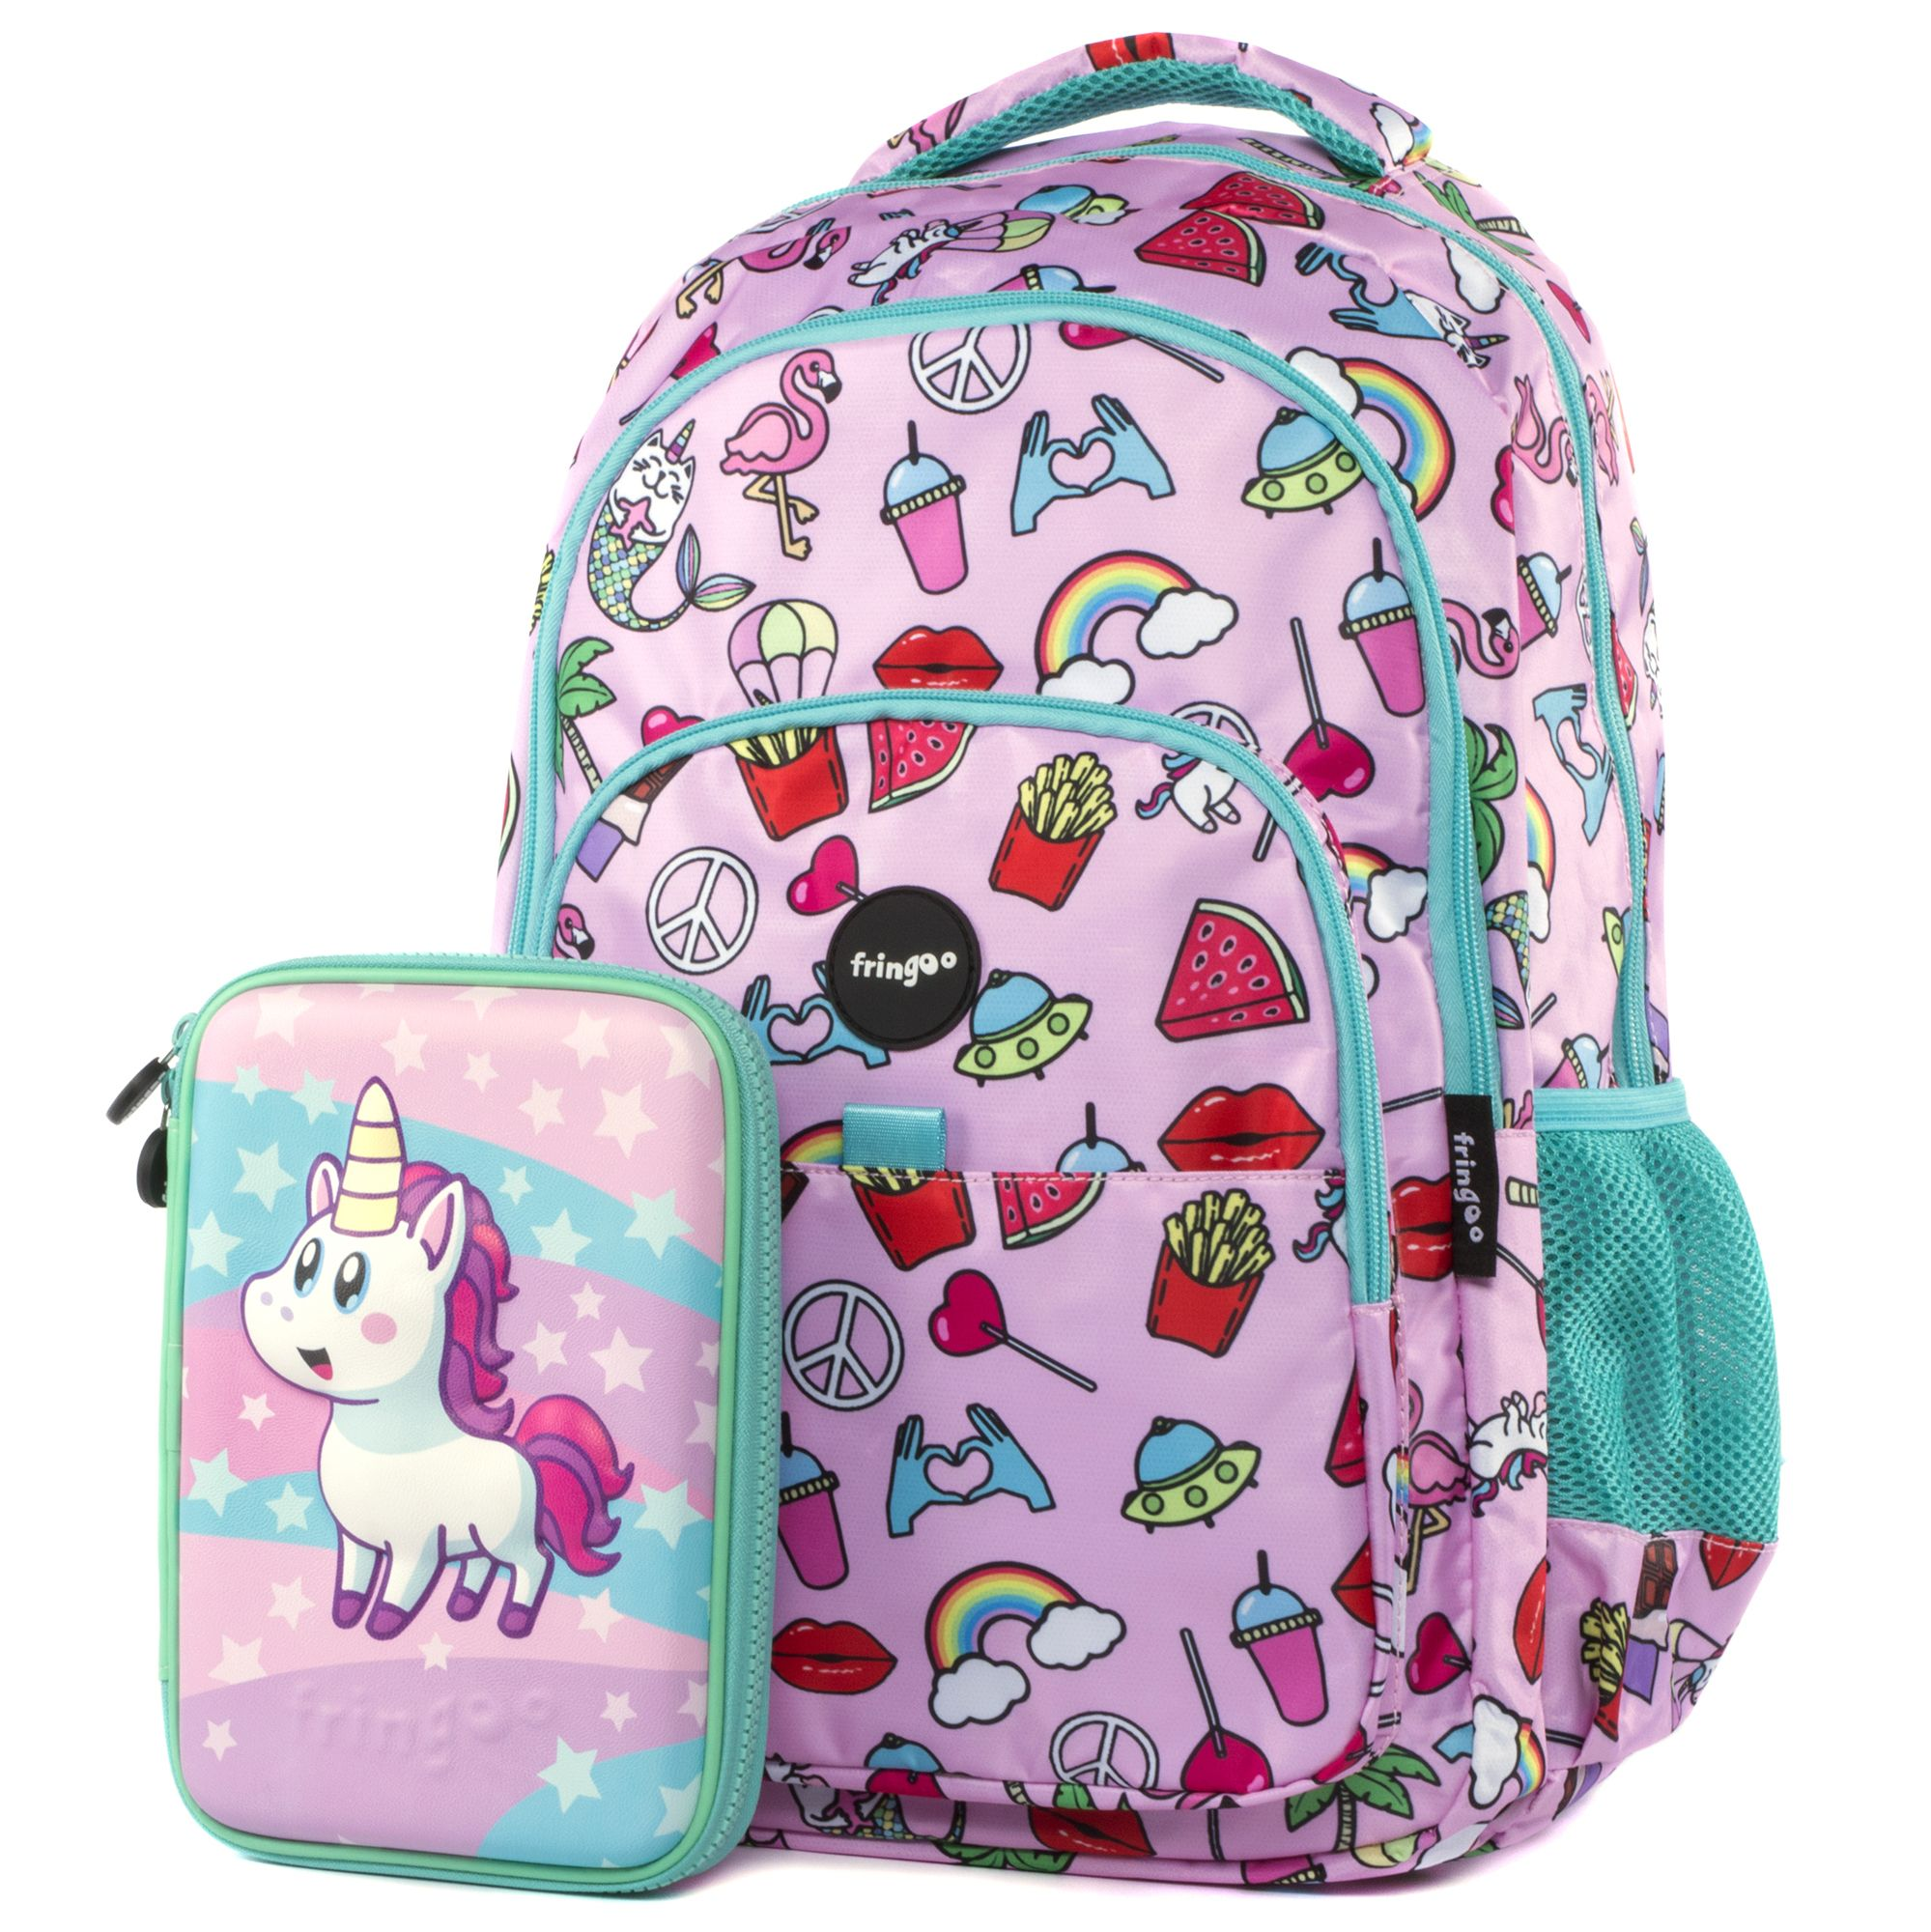 32b9dc0f09 Multi Compartment Backpack - Doodles Pink in 2019